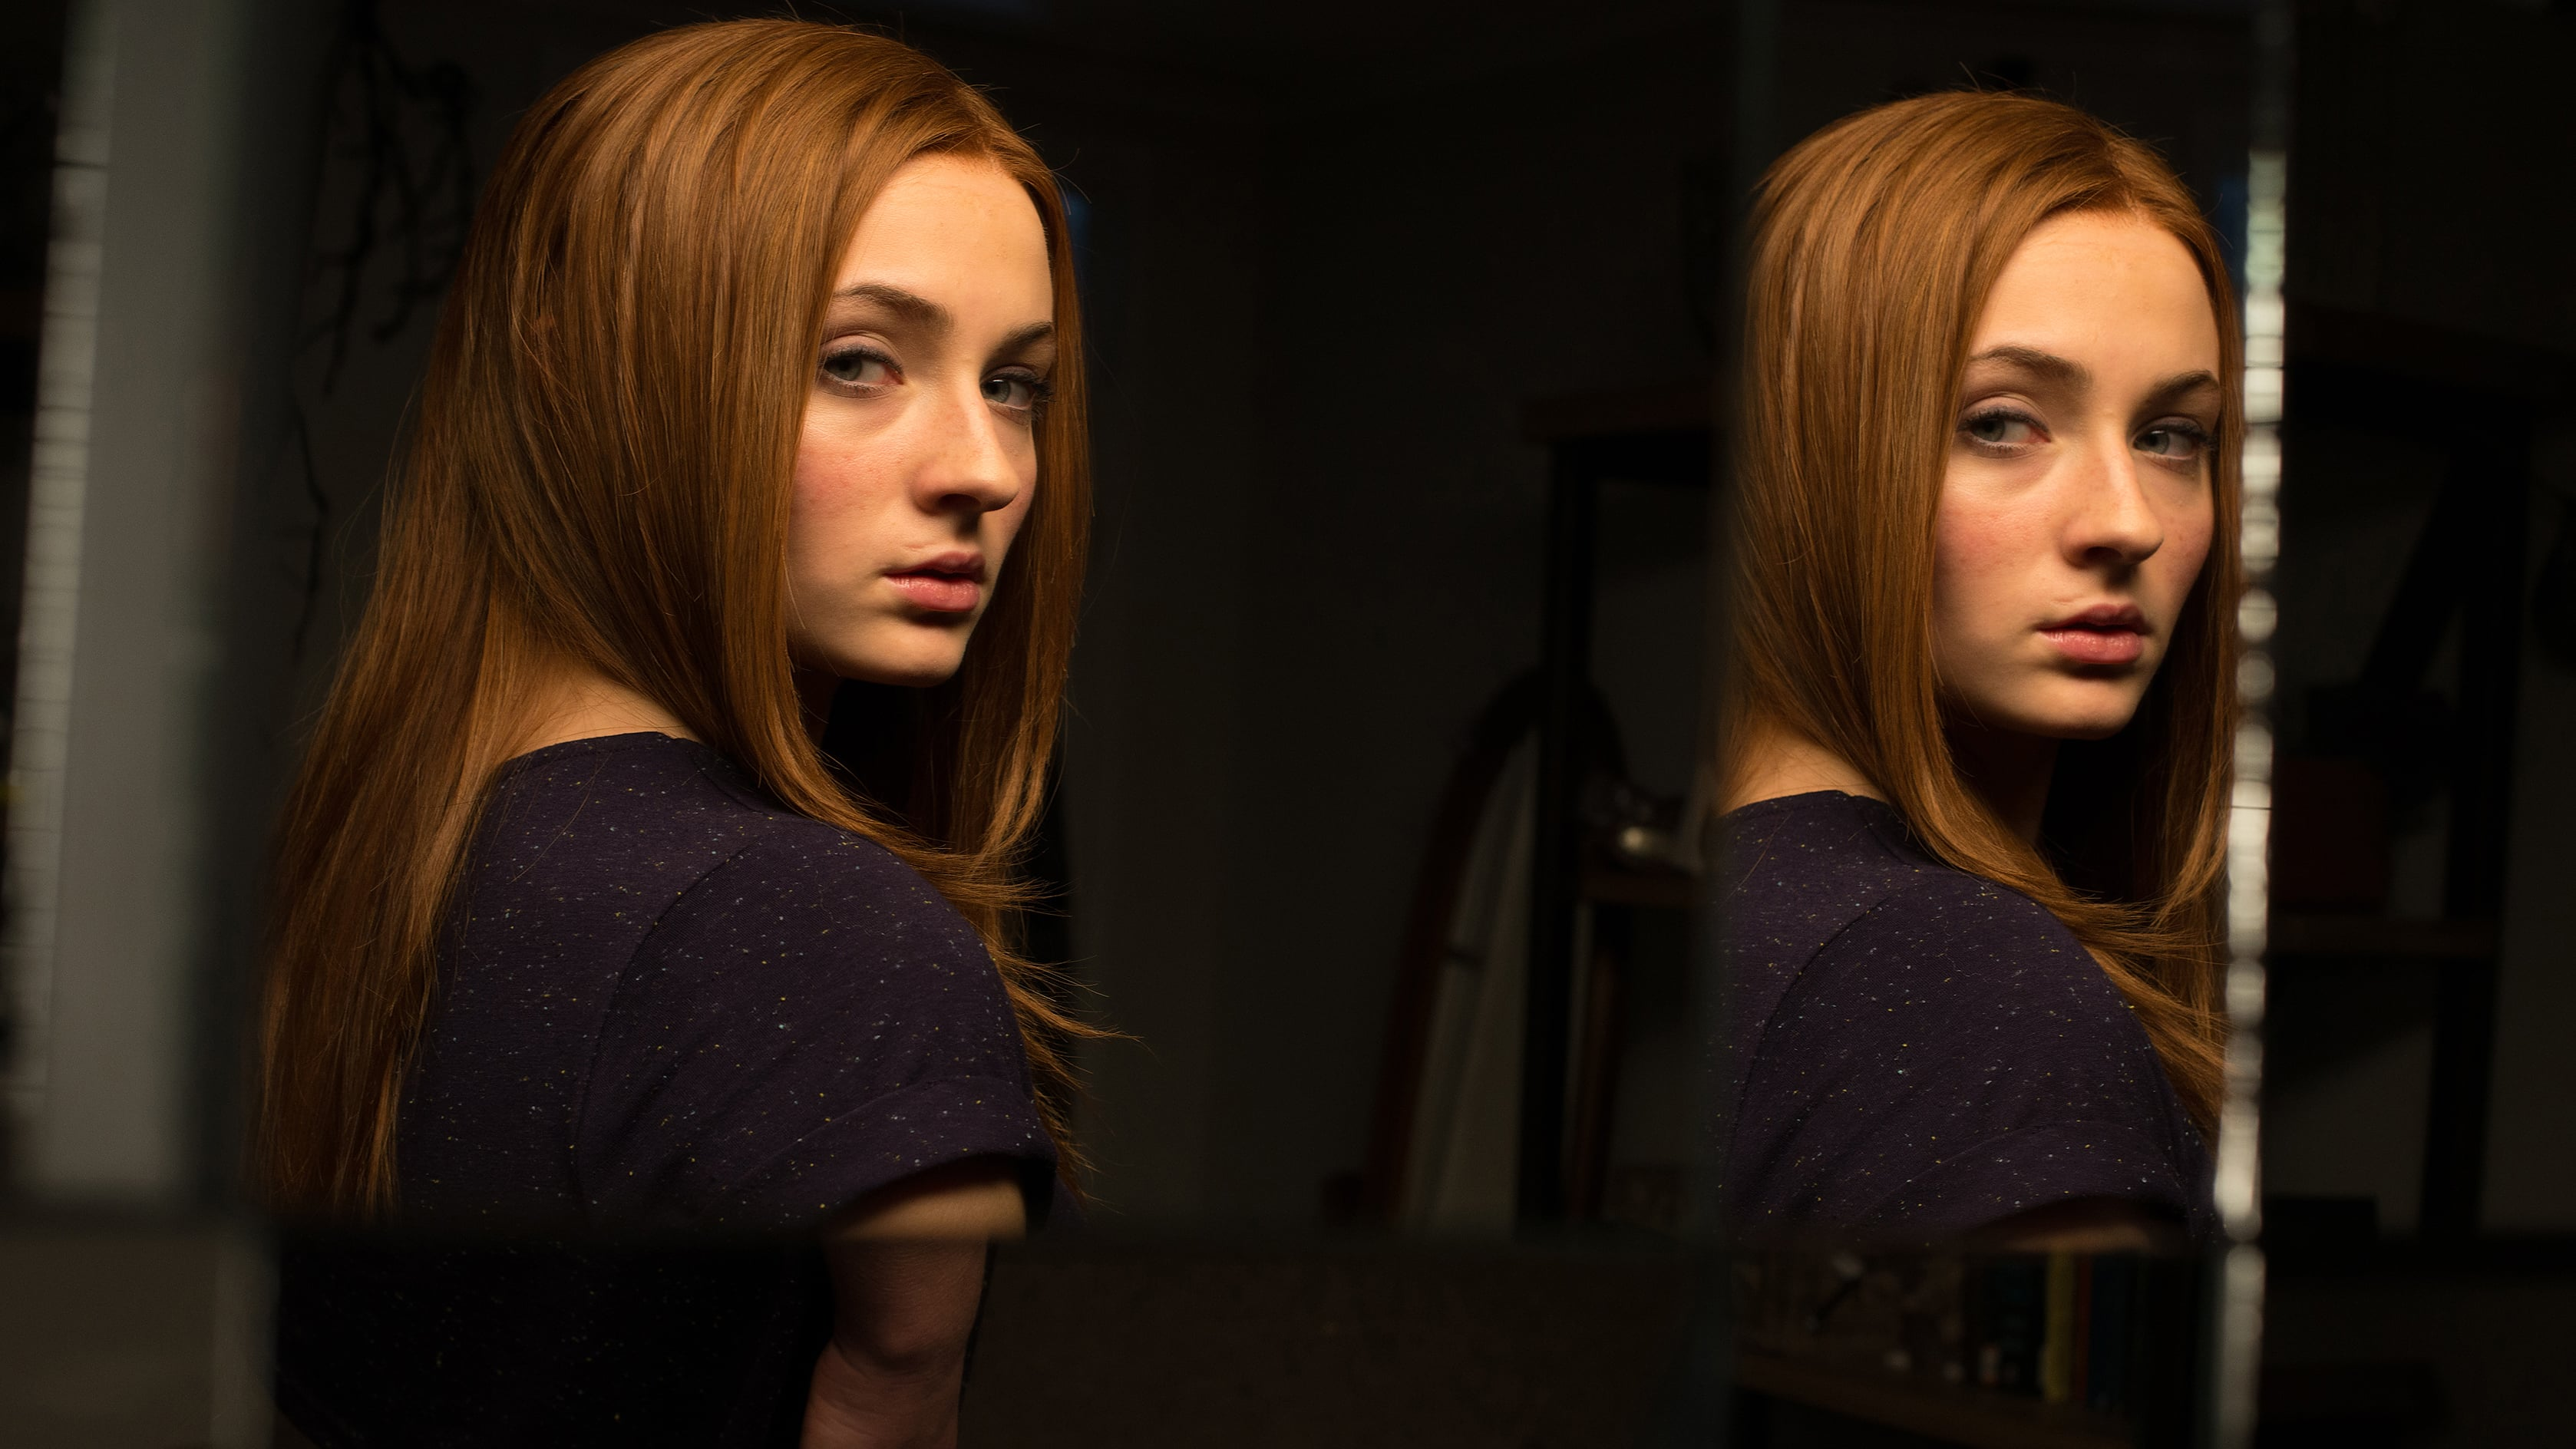 Sophie Turner as a regular British schoolgirl facing a doppelganger in Another Me (2013)